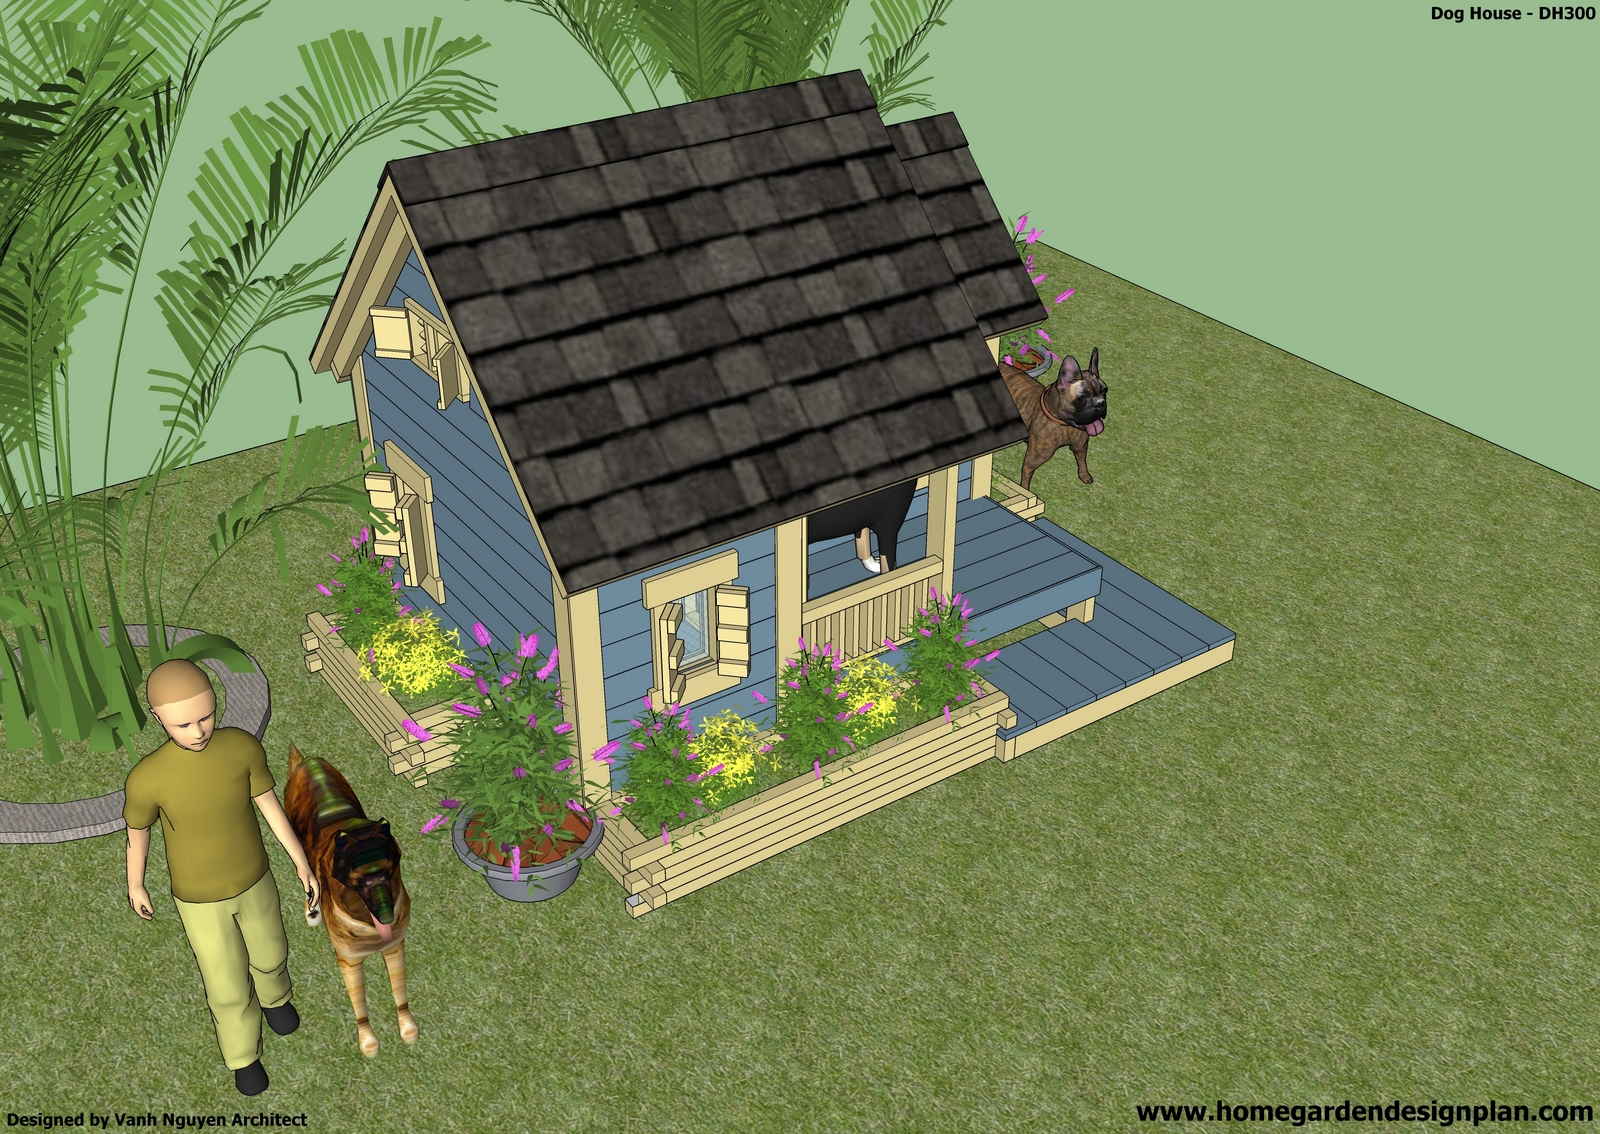 Insulated Dog Houses for Use Year-Round Free Insulated Dog House Plans